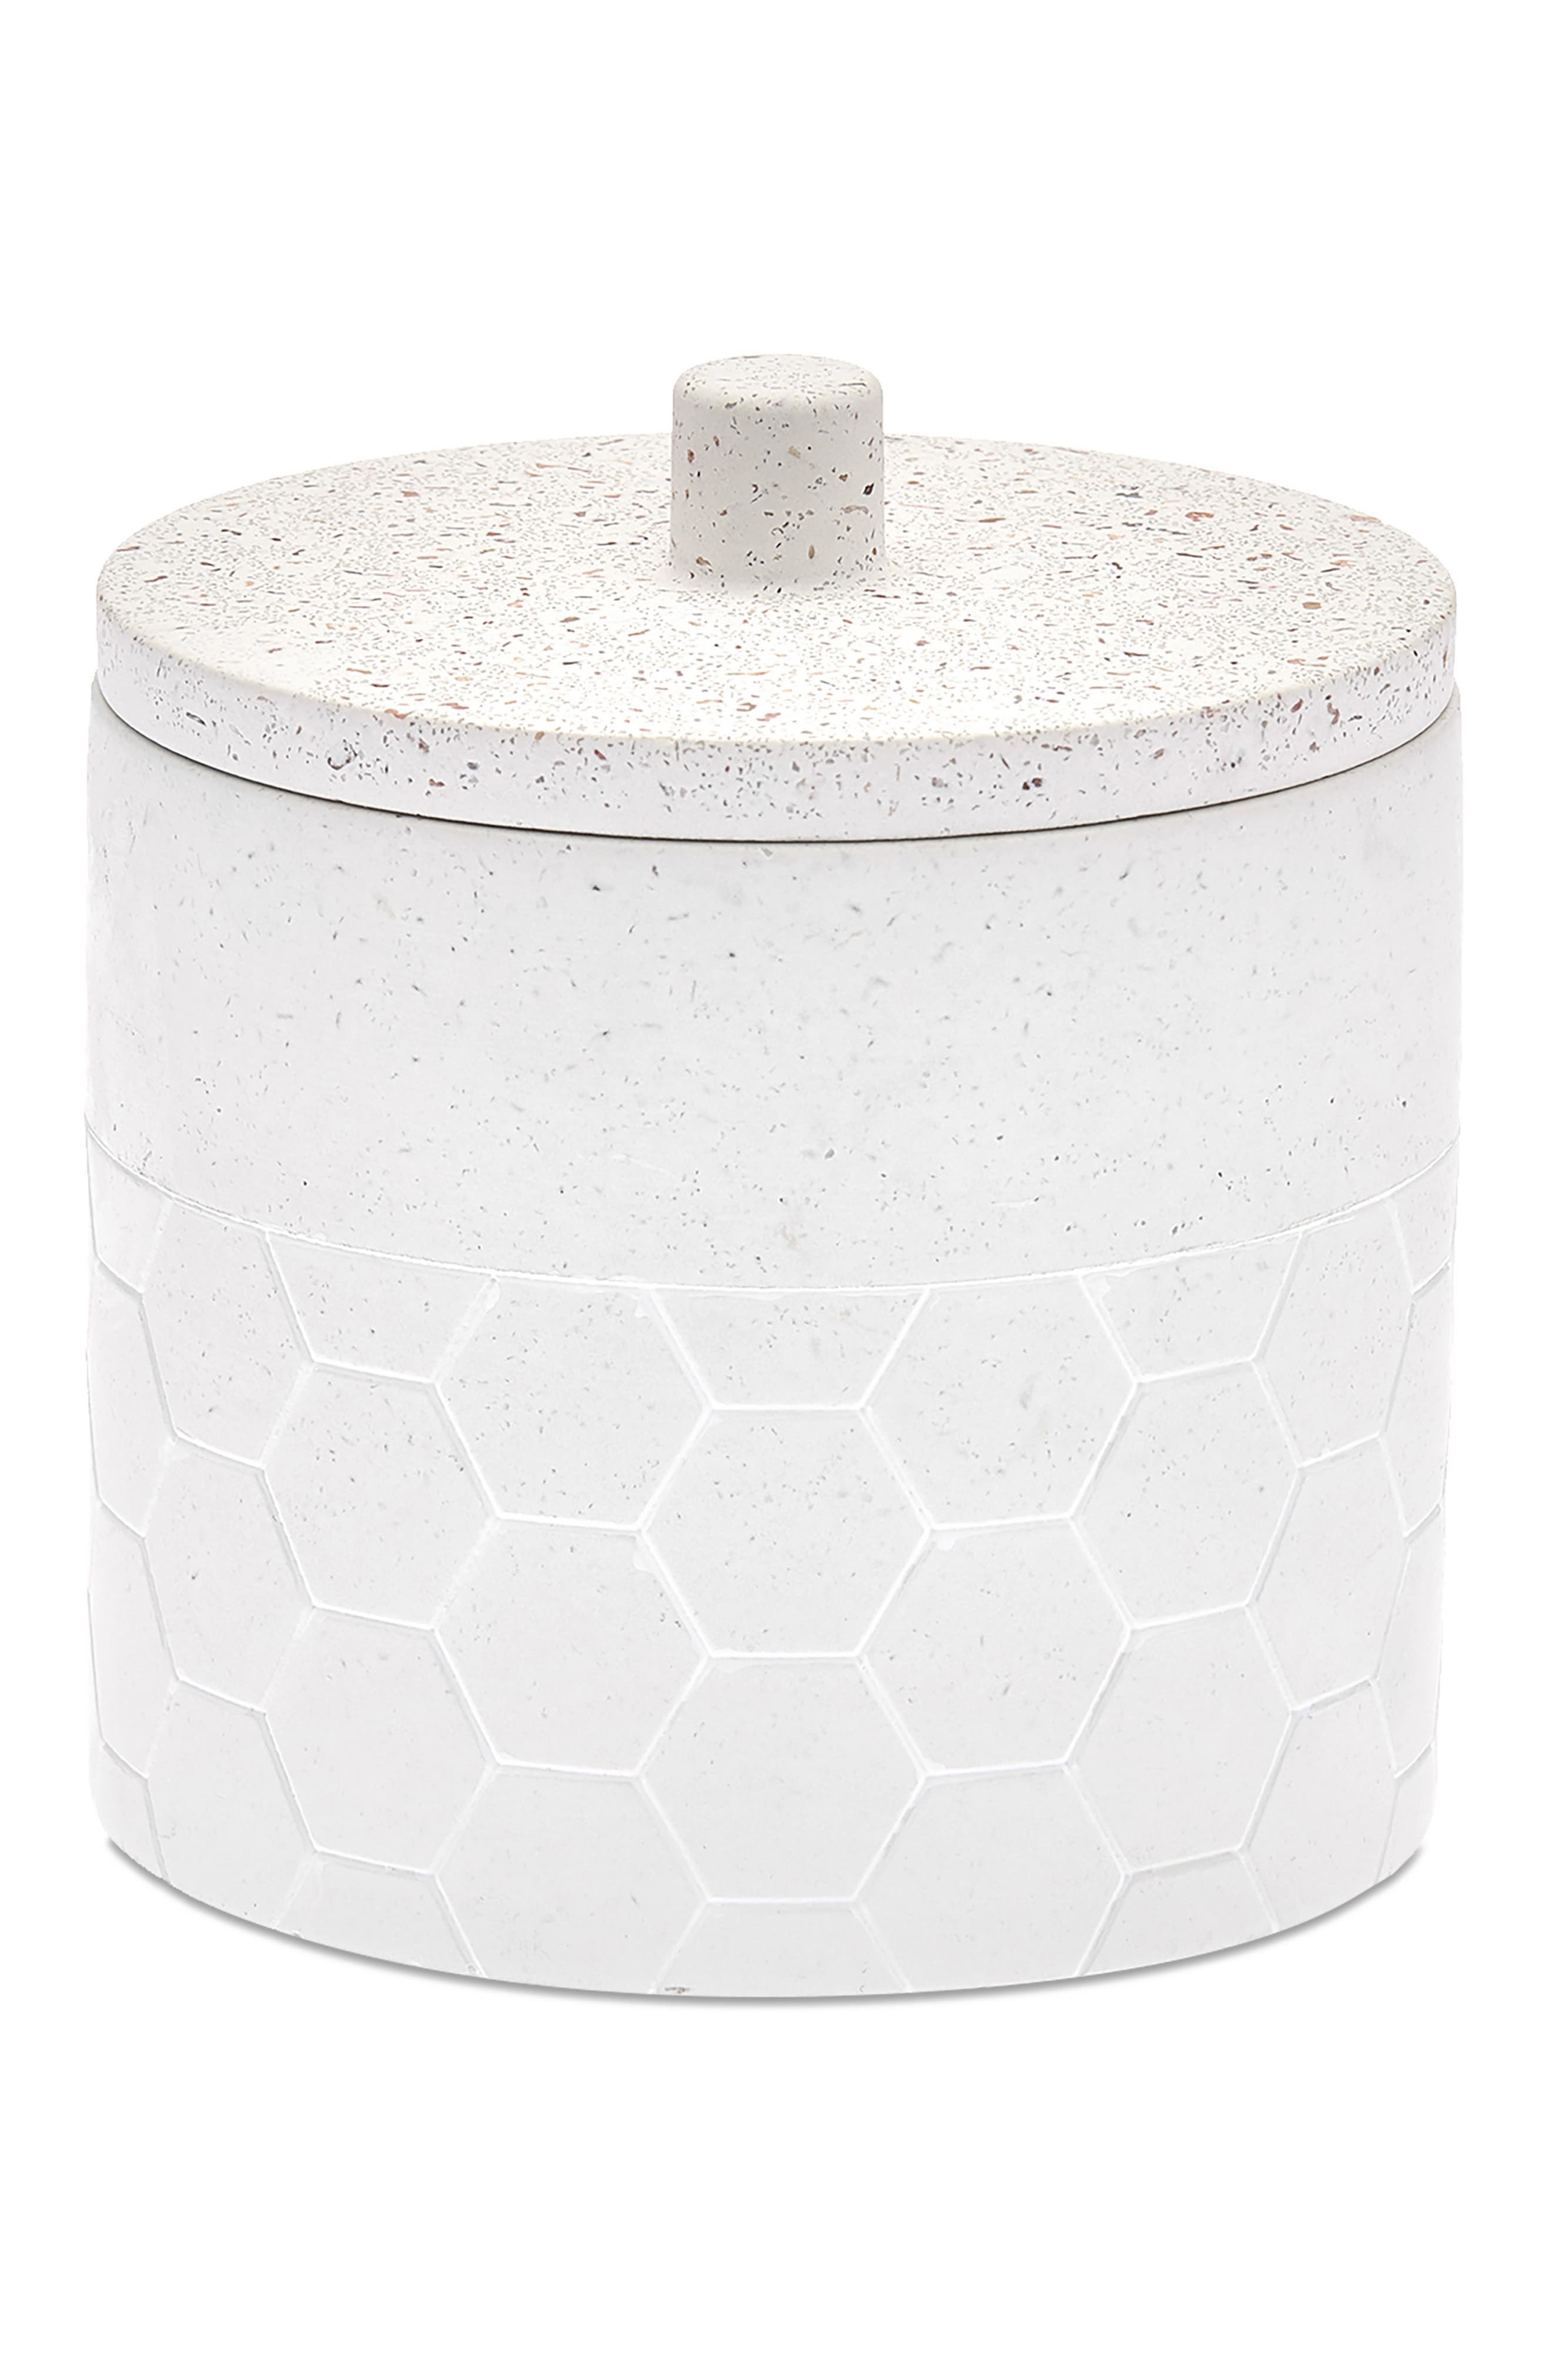 Terrazzo pebbles bring earthy texture and color to a cement jar that\\\'s perfect for hiding away cotton swabs or other necessities in your bathroom. Style Name: UGG Bathroom Jar. Style Number: 6052089. Available in stores.